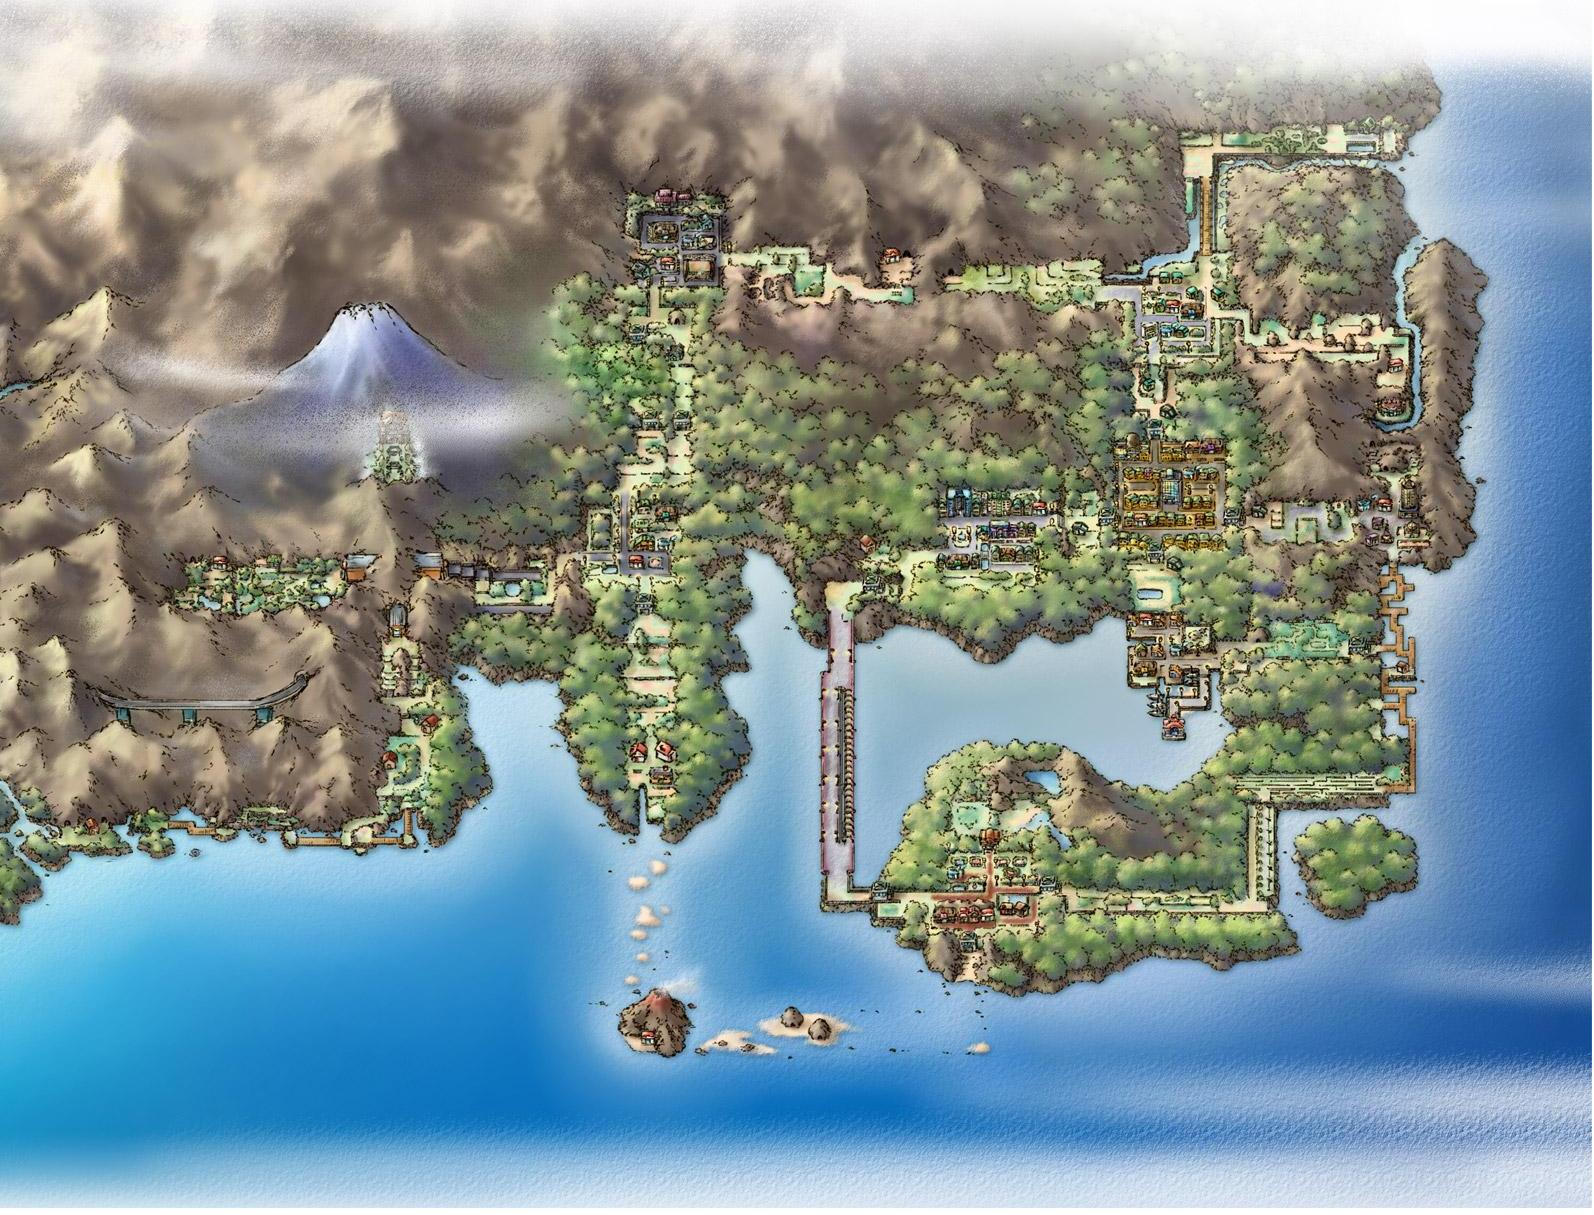 The Original Pokémon Games, Recreated In Old-School SimCity. Dang.